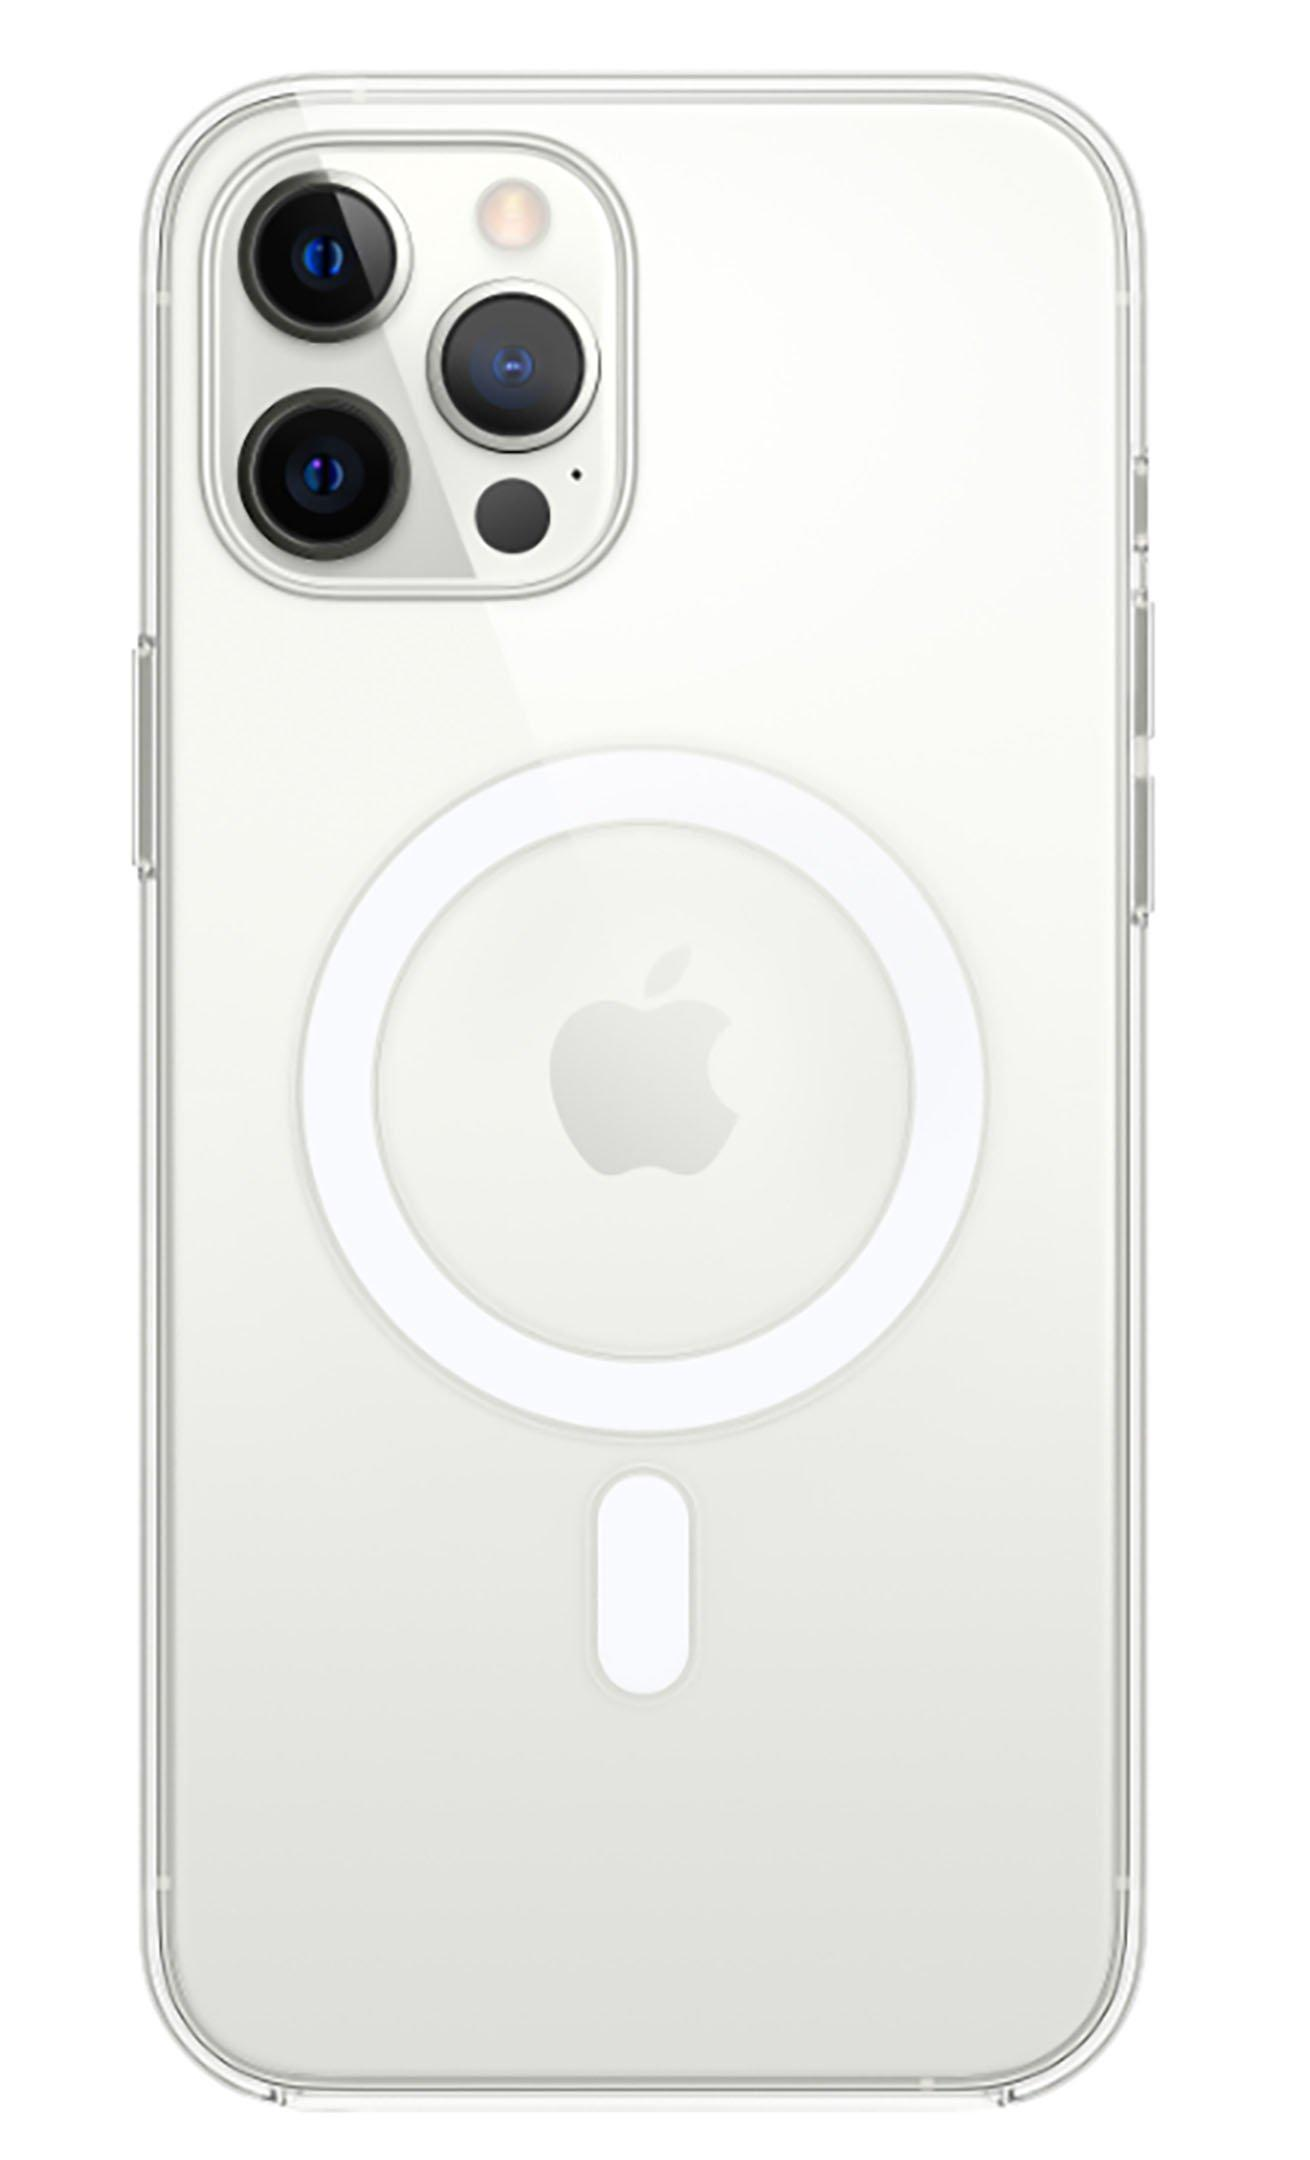 Apple iPhone 12 Pro Max Clear Case with MagSafe - eXtra Saudi